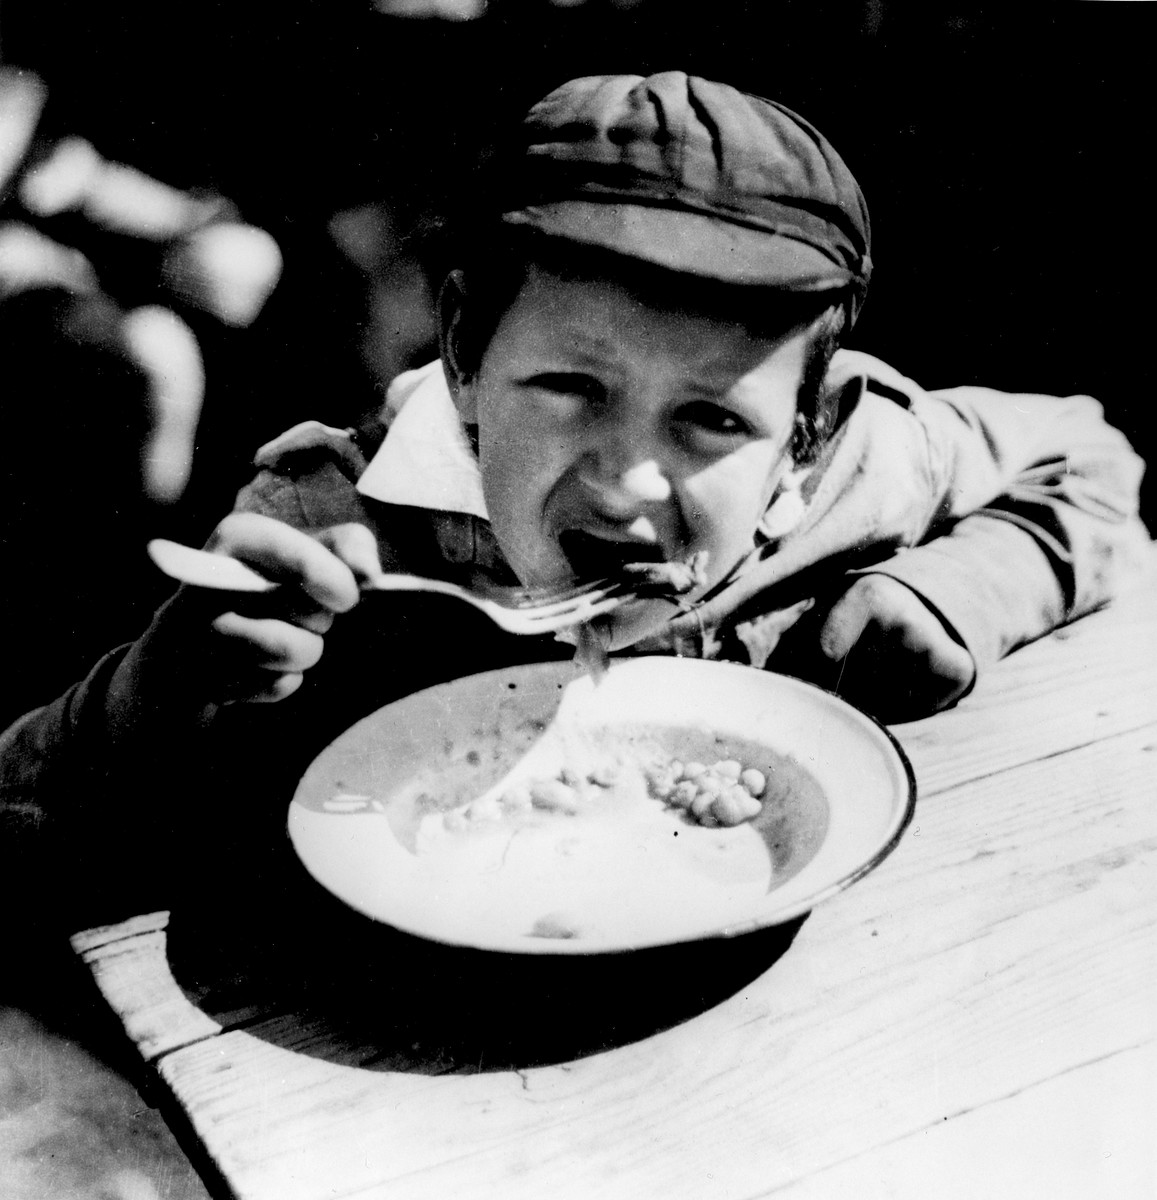 A child eats a meal in the TOZ summer home in Wisniowa Gora.    The TOZ (Society for the Safeguarding of the Health of the Jewish Population) is an affiliate of the international OSE/OZE organization. This summer home provided free housing, food, education, and physical activity for approximately forty impoverished boys, children of factory workers, for a period of three weeks.